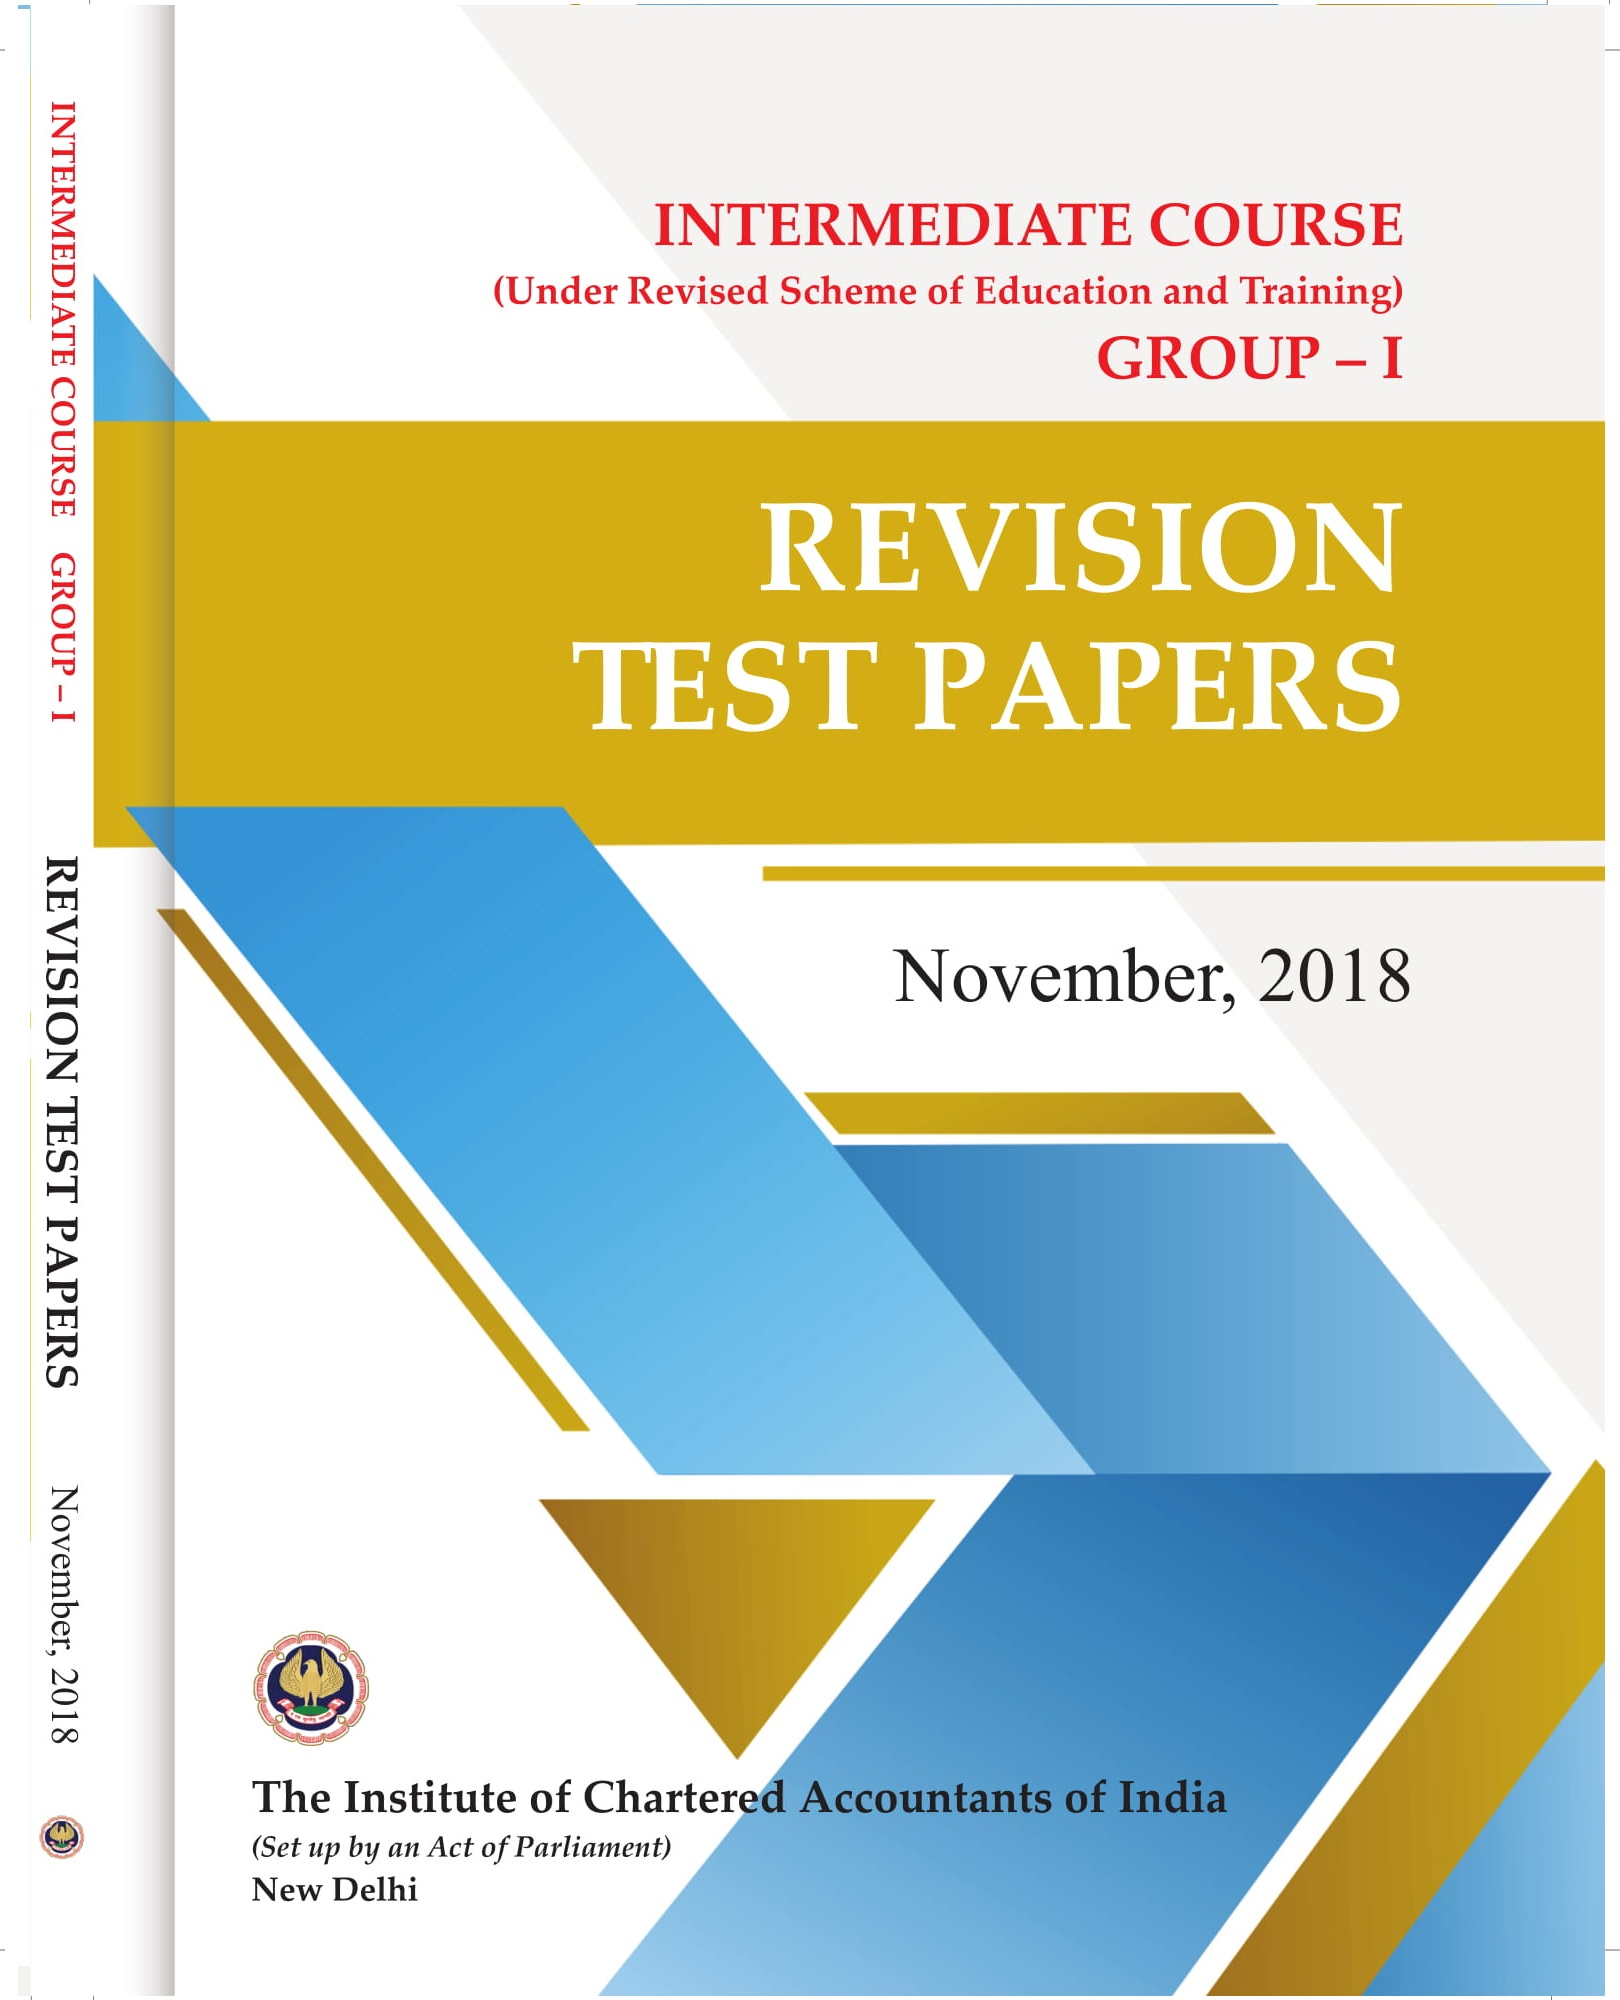 Intermediate Course (Under Revised Scheme of Education and Training) - Group - I - Revision Test Papers - November, 2018